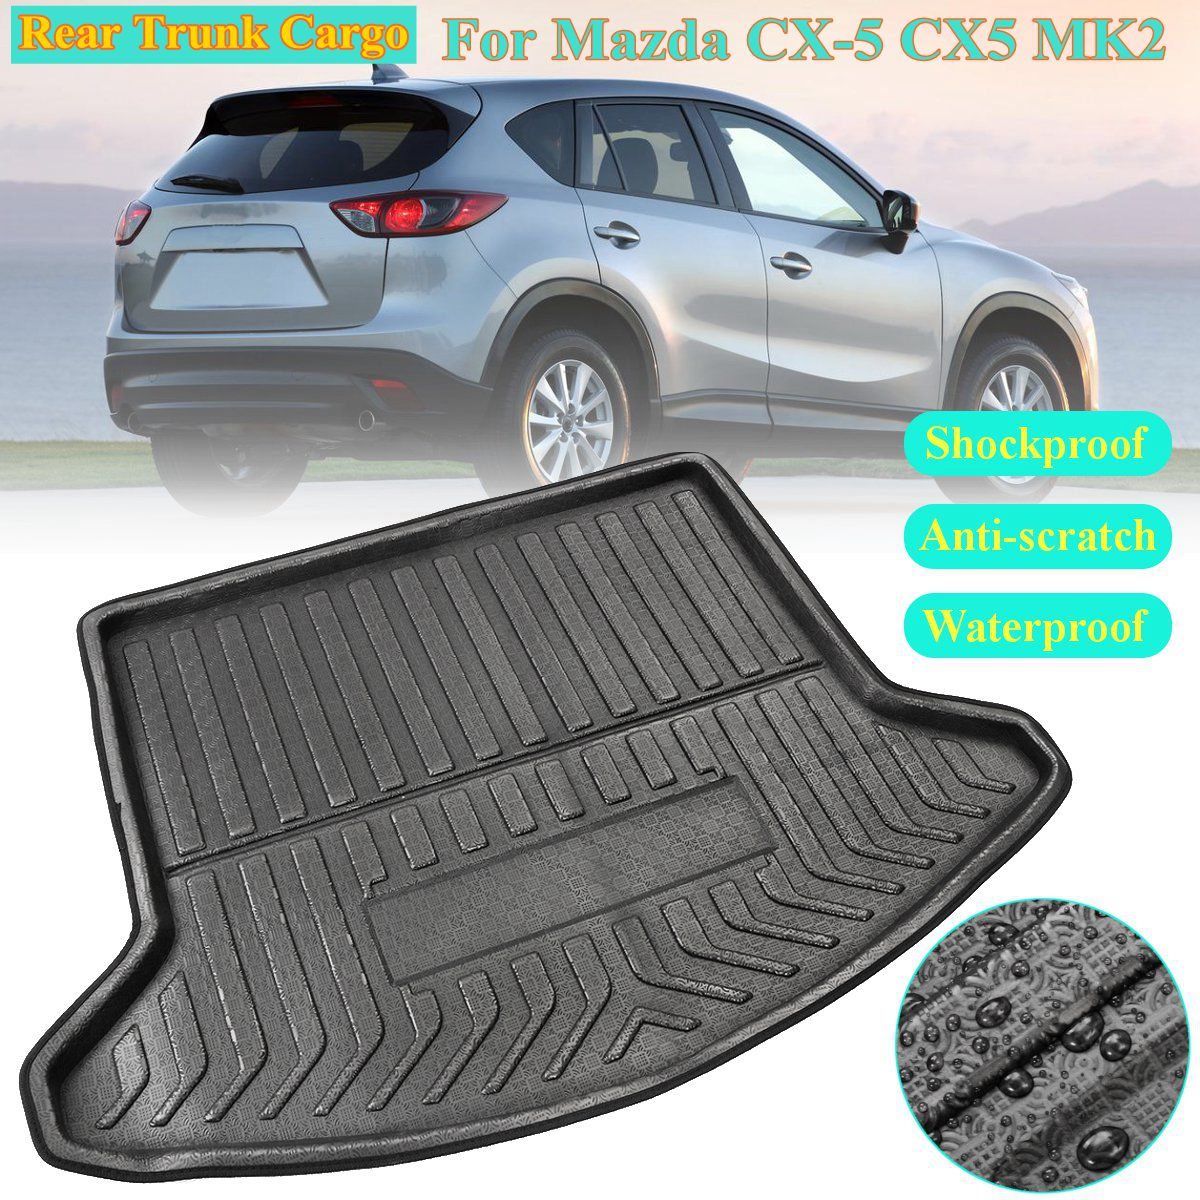 PE+EVA Rear Trunk Cargo Car styling Interior Accessories Boot Liner Waterproof Mat for Mazda CX 5 CX5 MK2 2017 2018